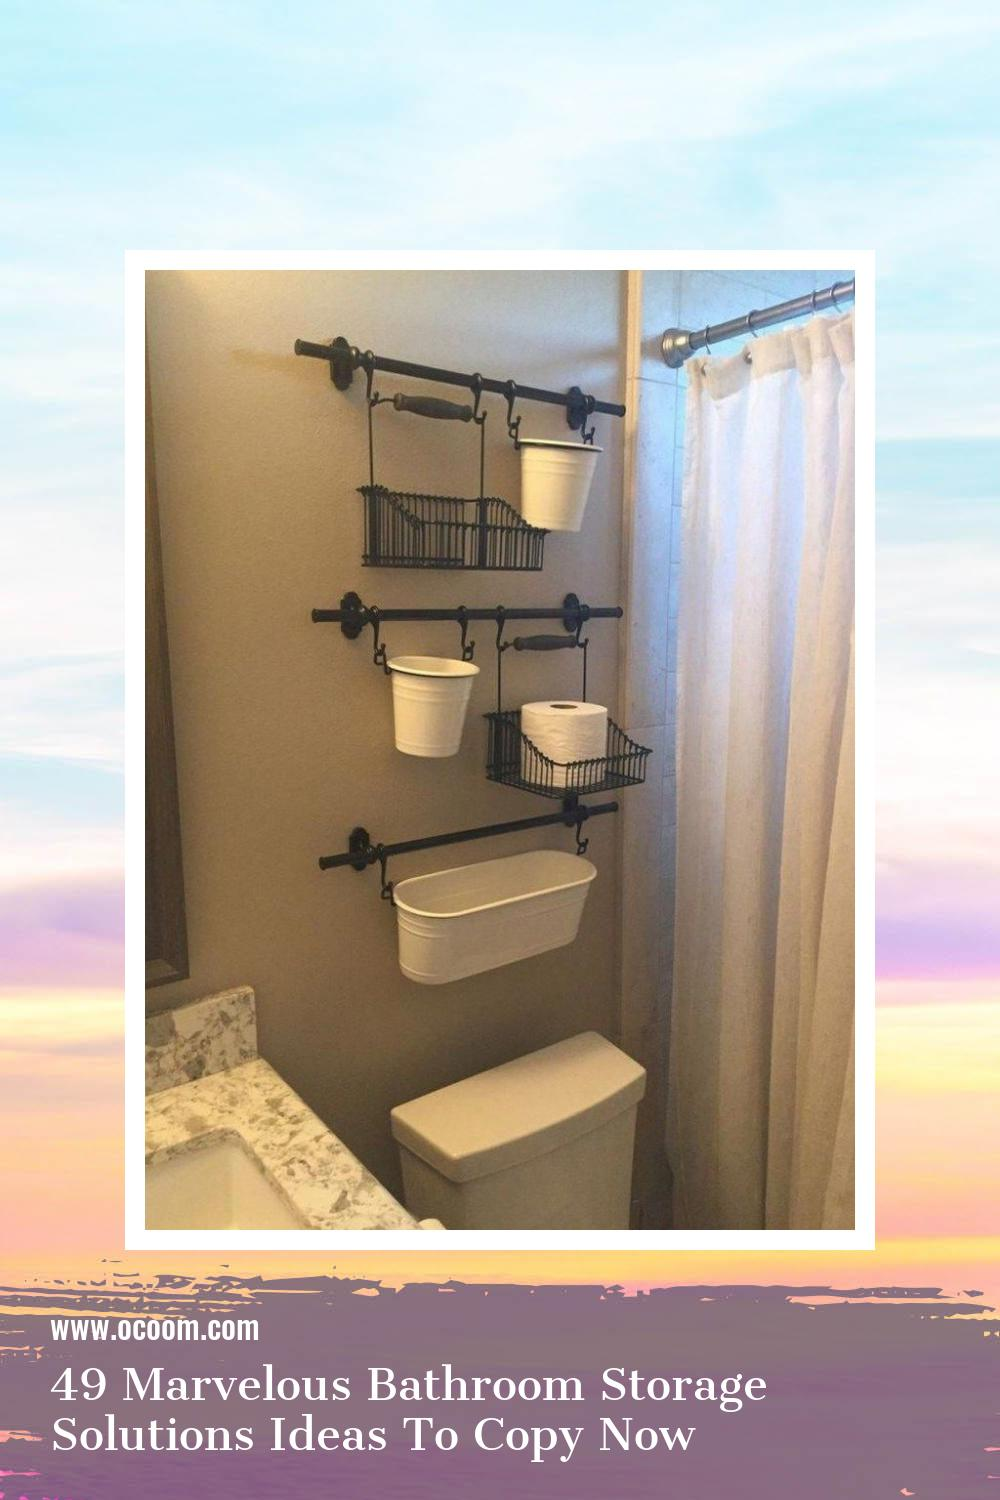 49 Marvelous Bathroom Storage Solutions Ideas To Copy Now 10